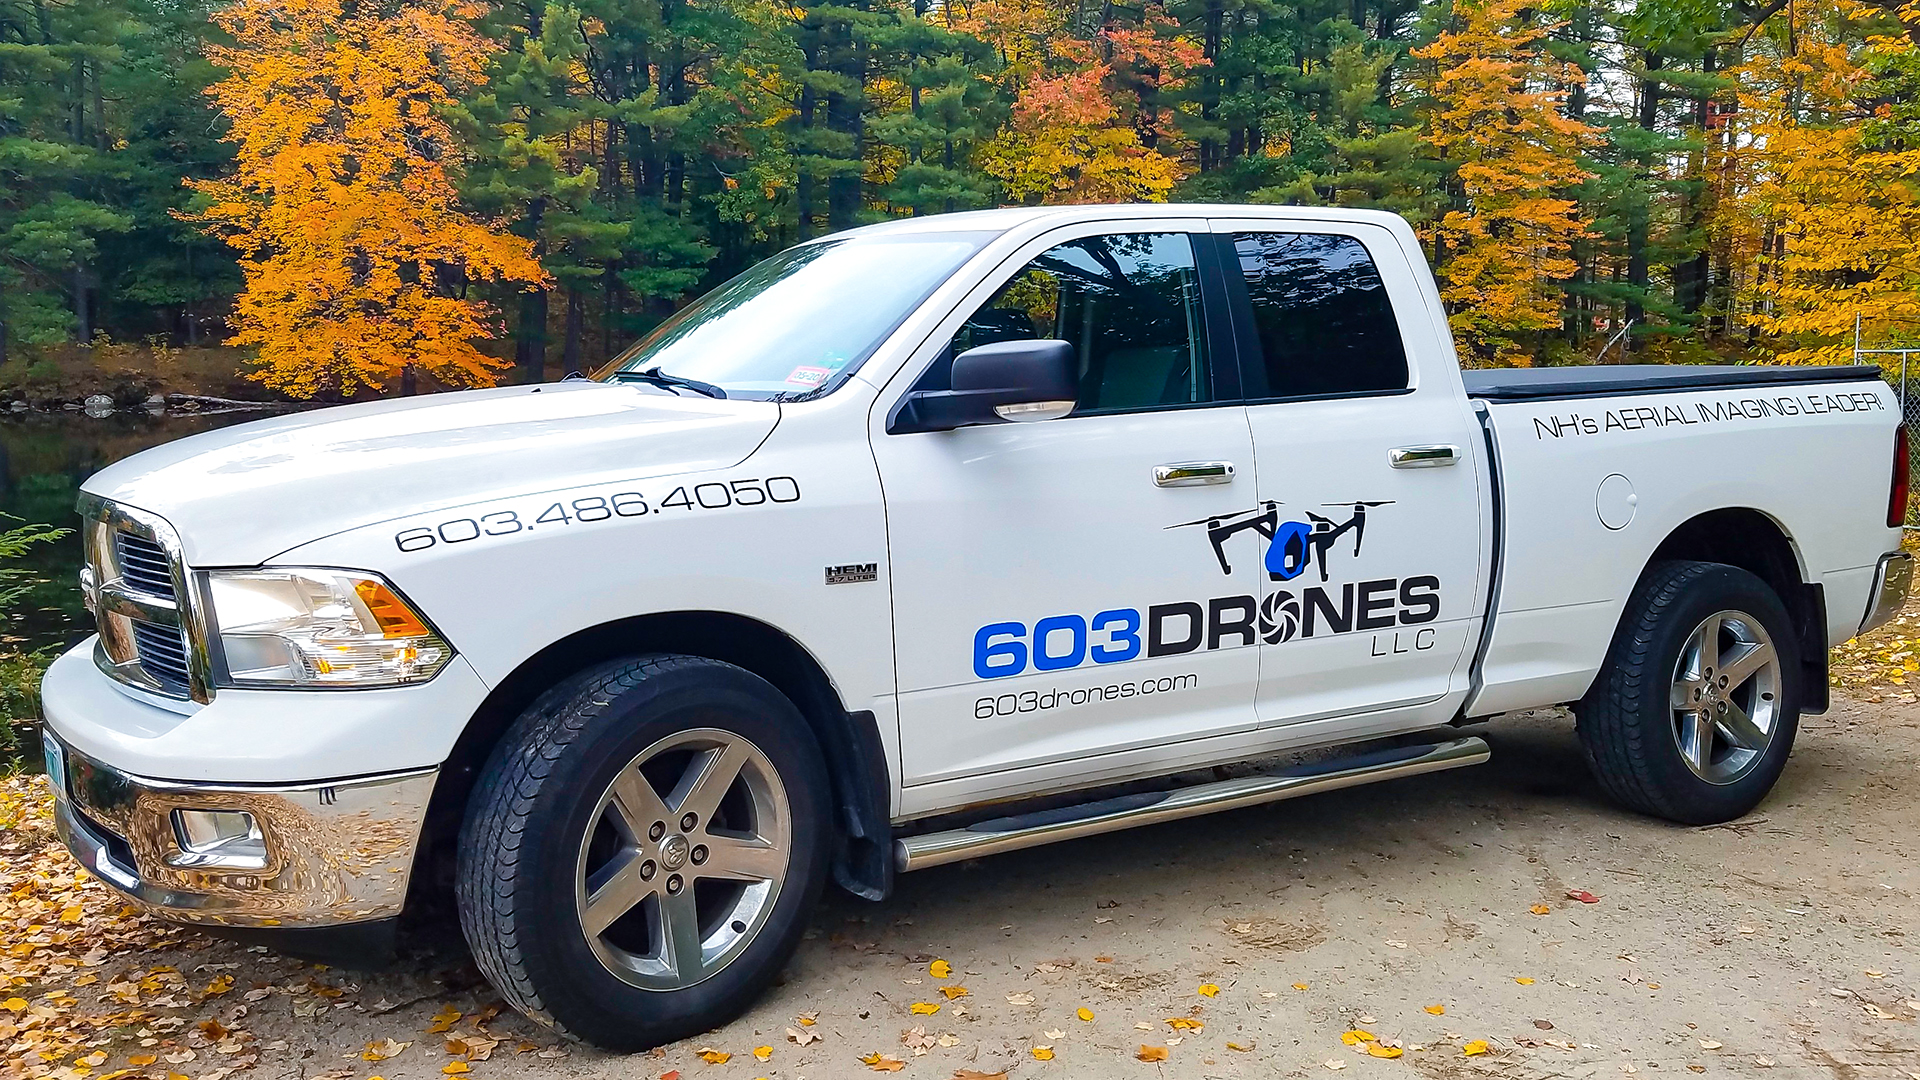 Image of 603 Drones, LLC Company Vehicle